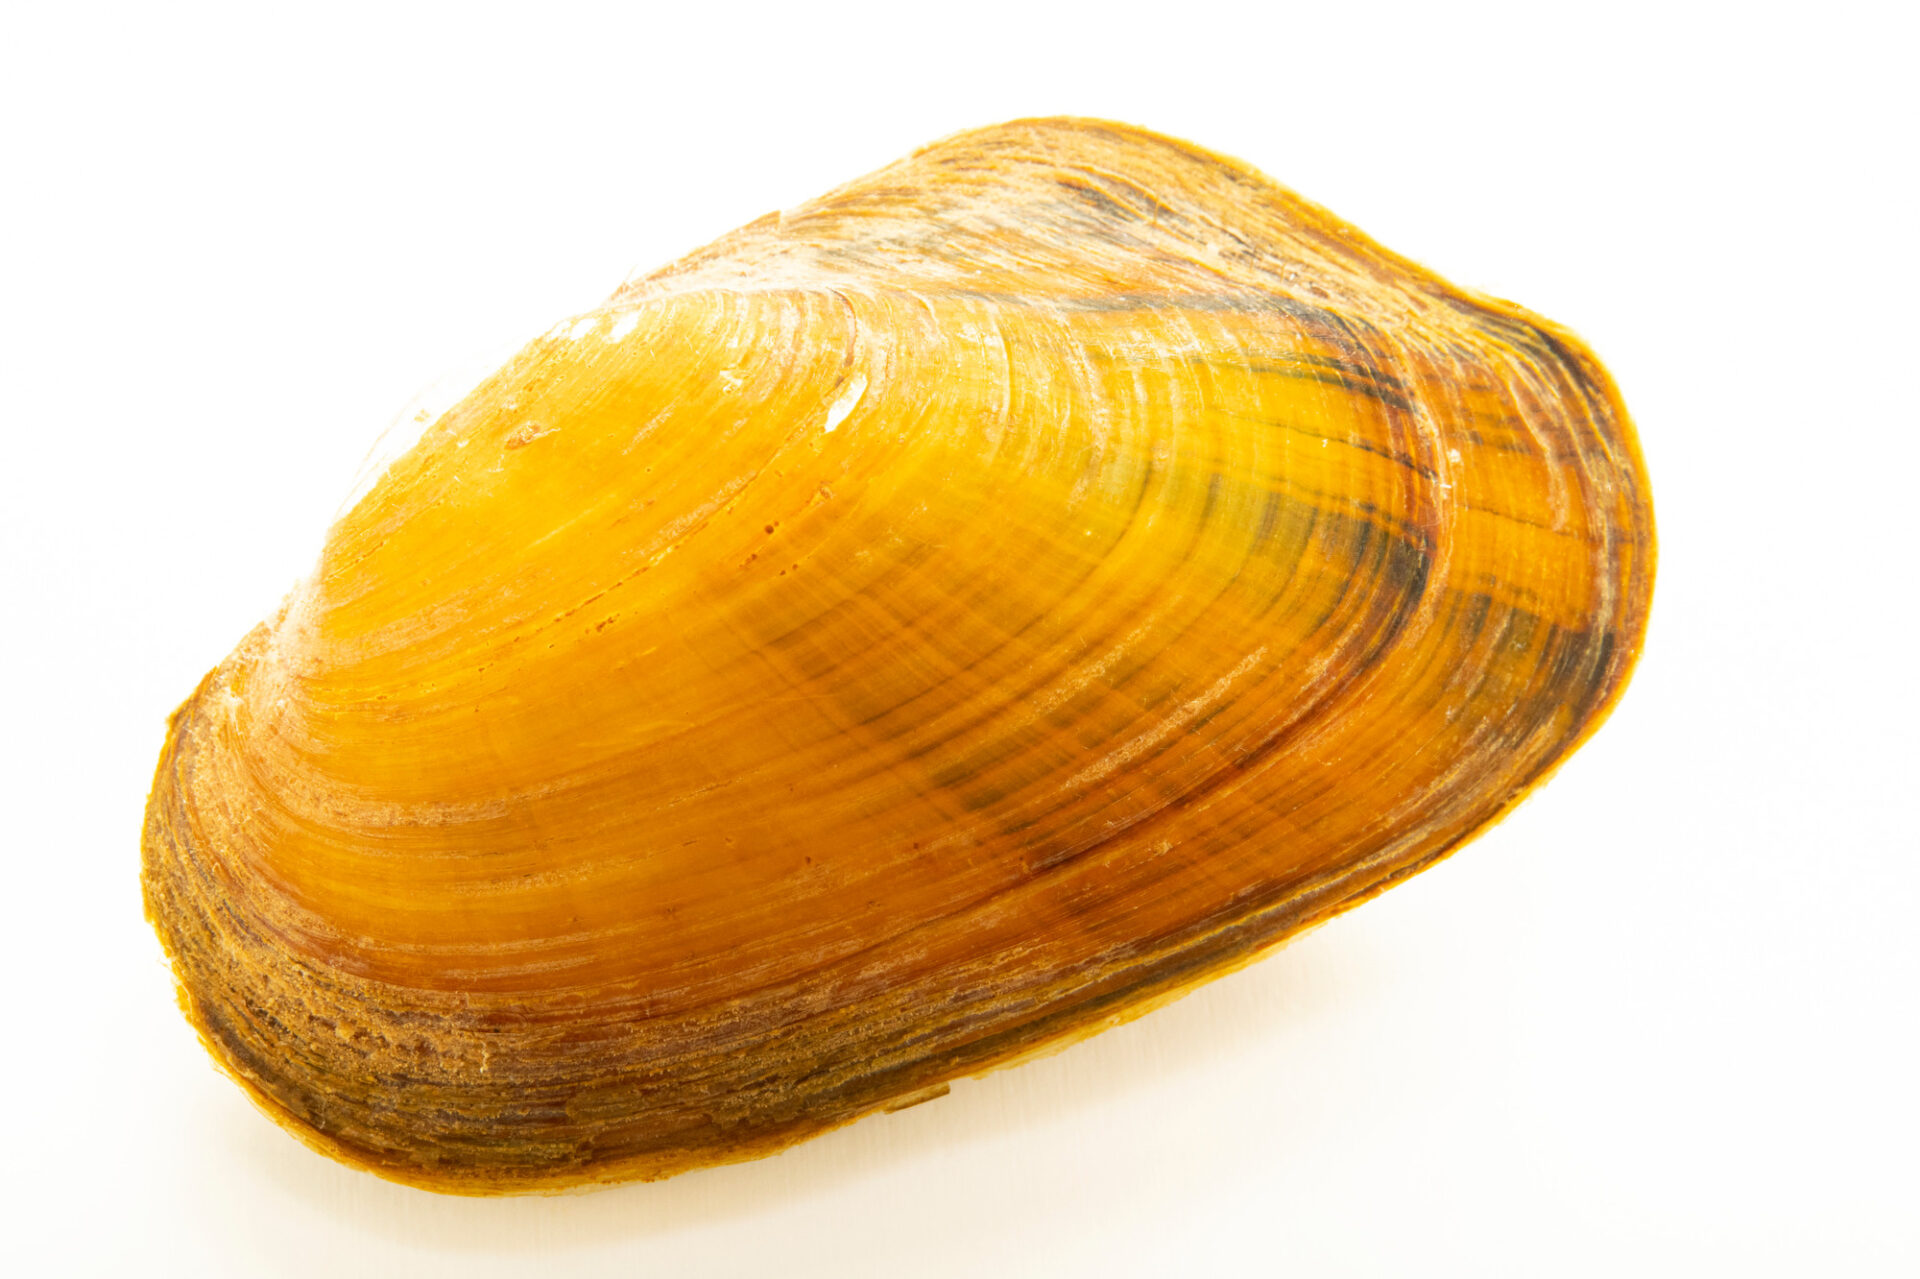 Photo: An Alabama creekmussel (Pseudodontoideus connasaugaensis) at the Alabama Aquatic Biodiversity Center in Marion, Alabama.